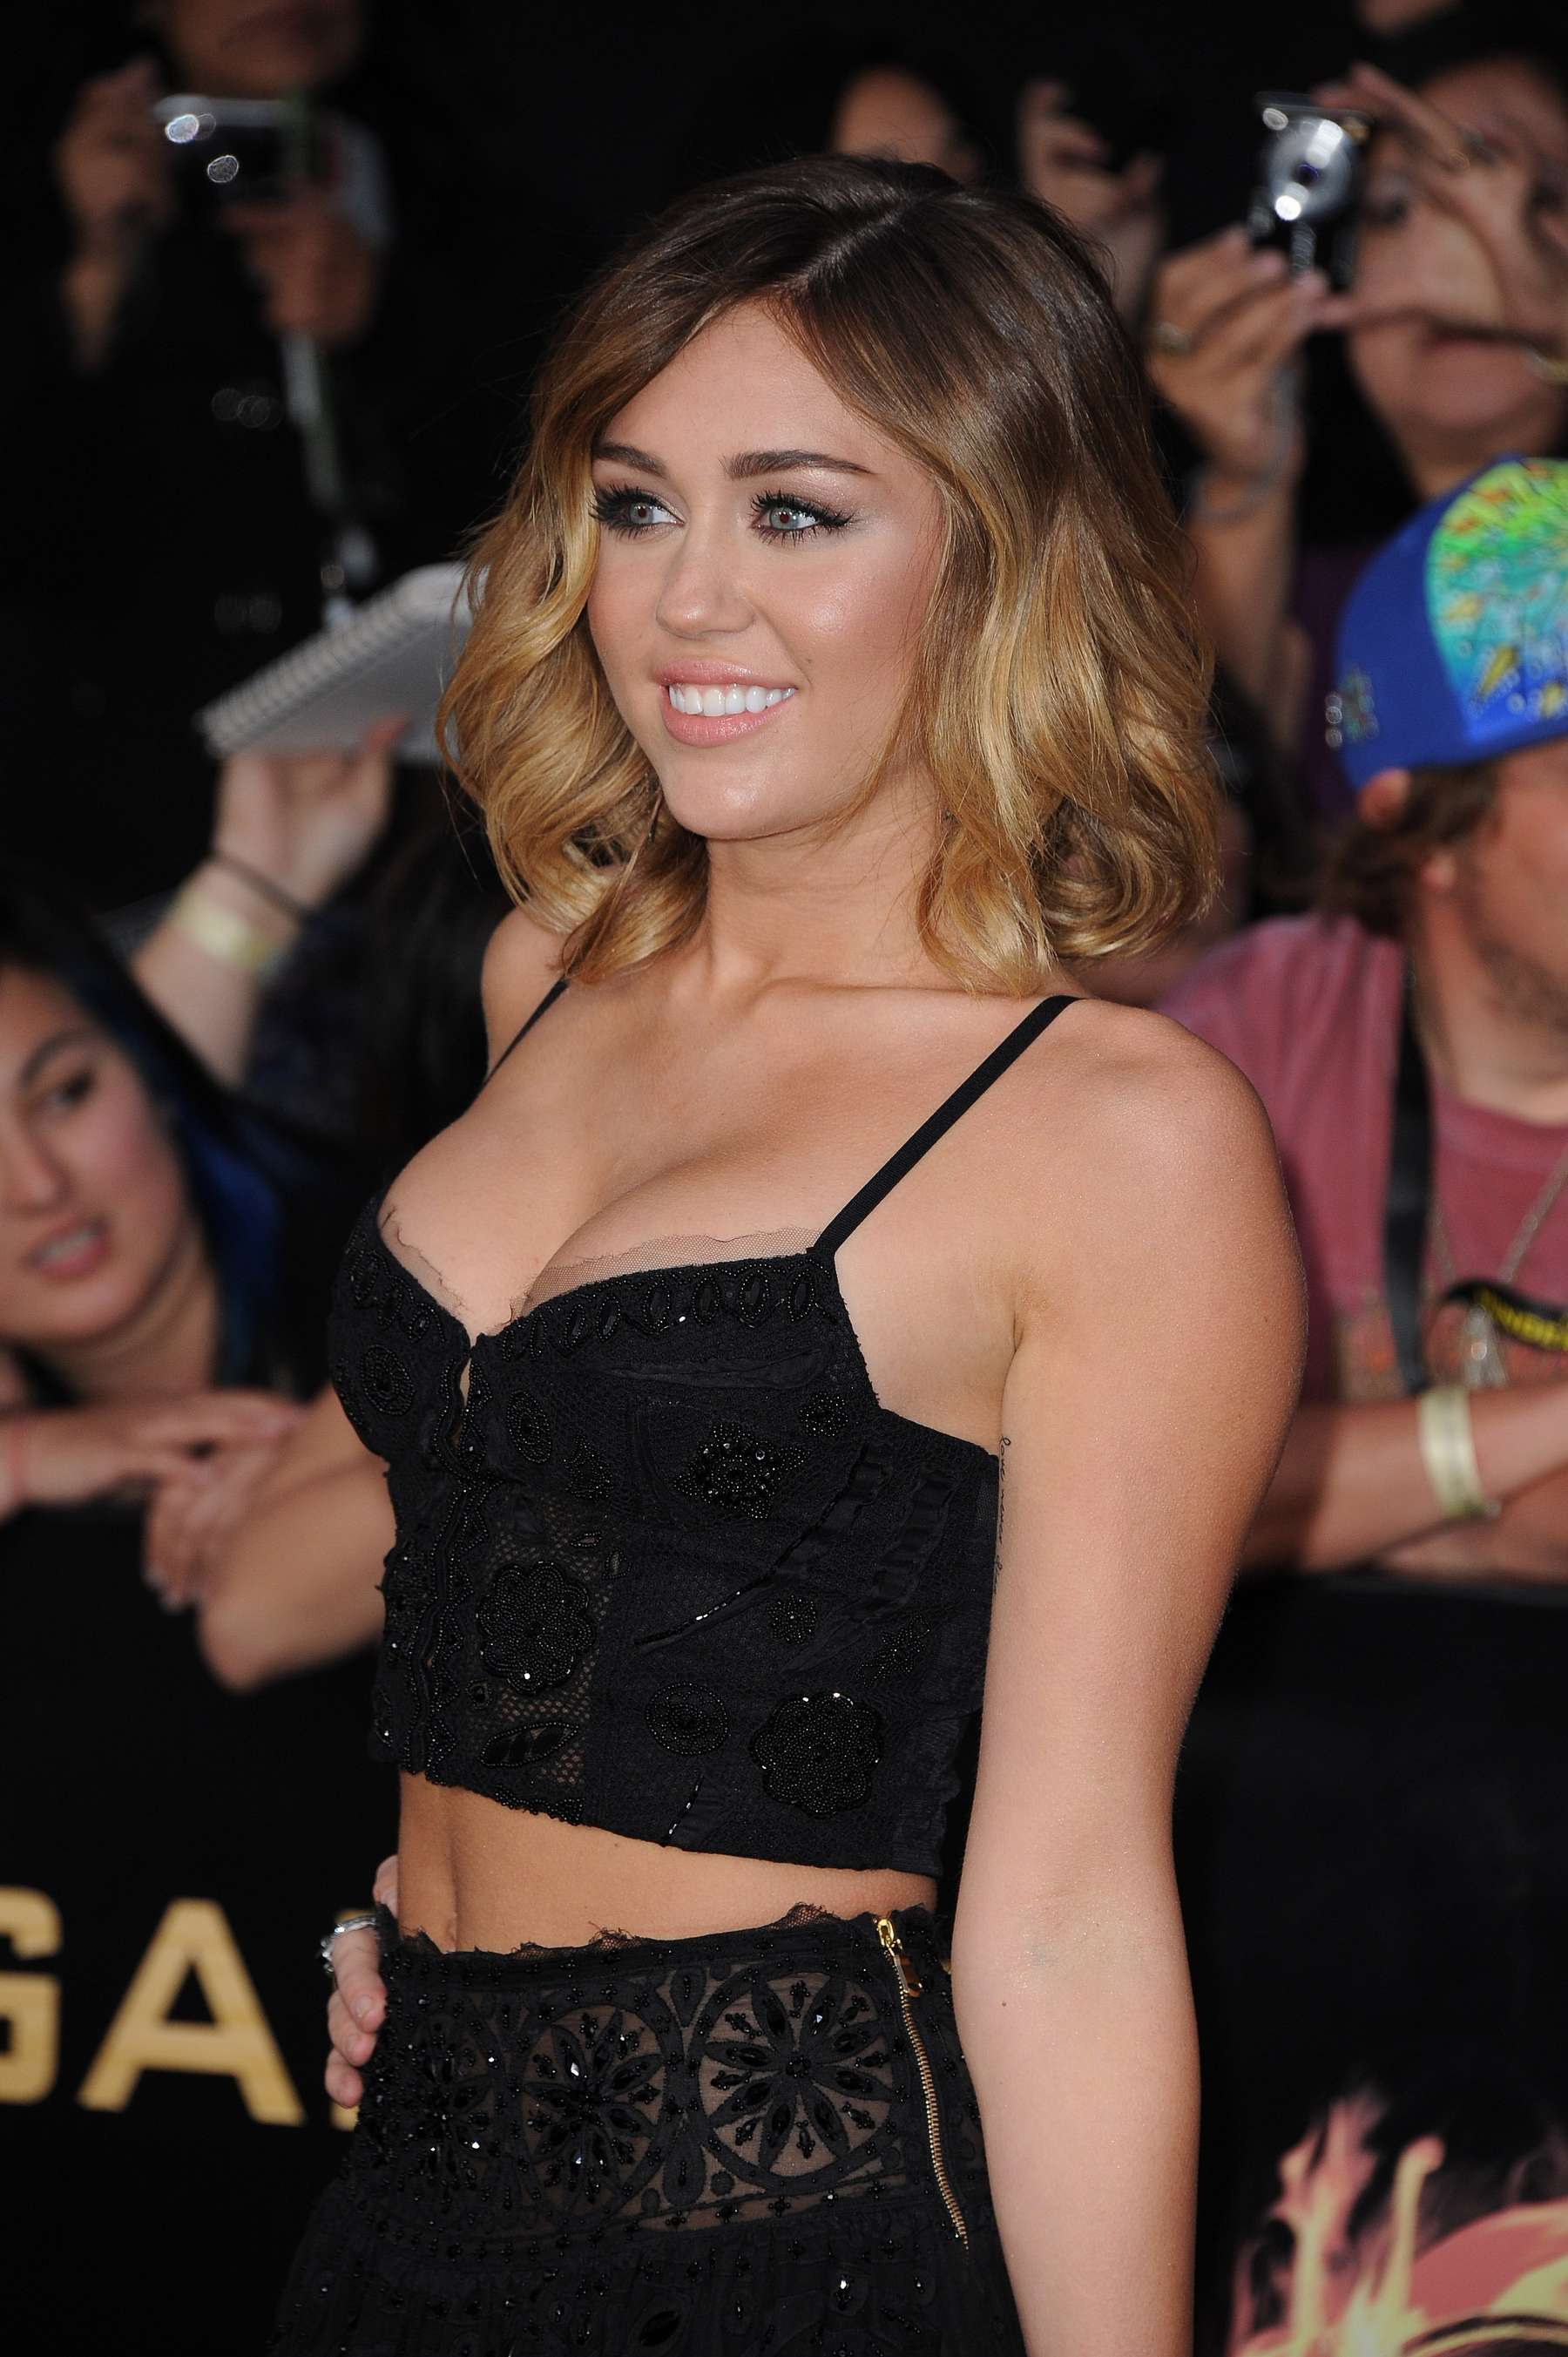 Miley Cyrus 2012 : Miley Cyrus shows big cleavage at The Hunger Games-14